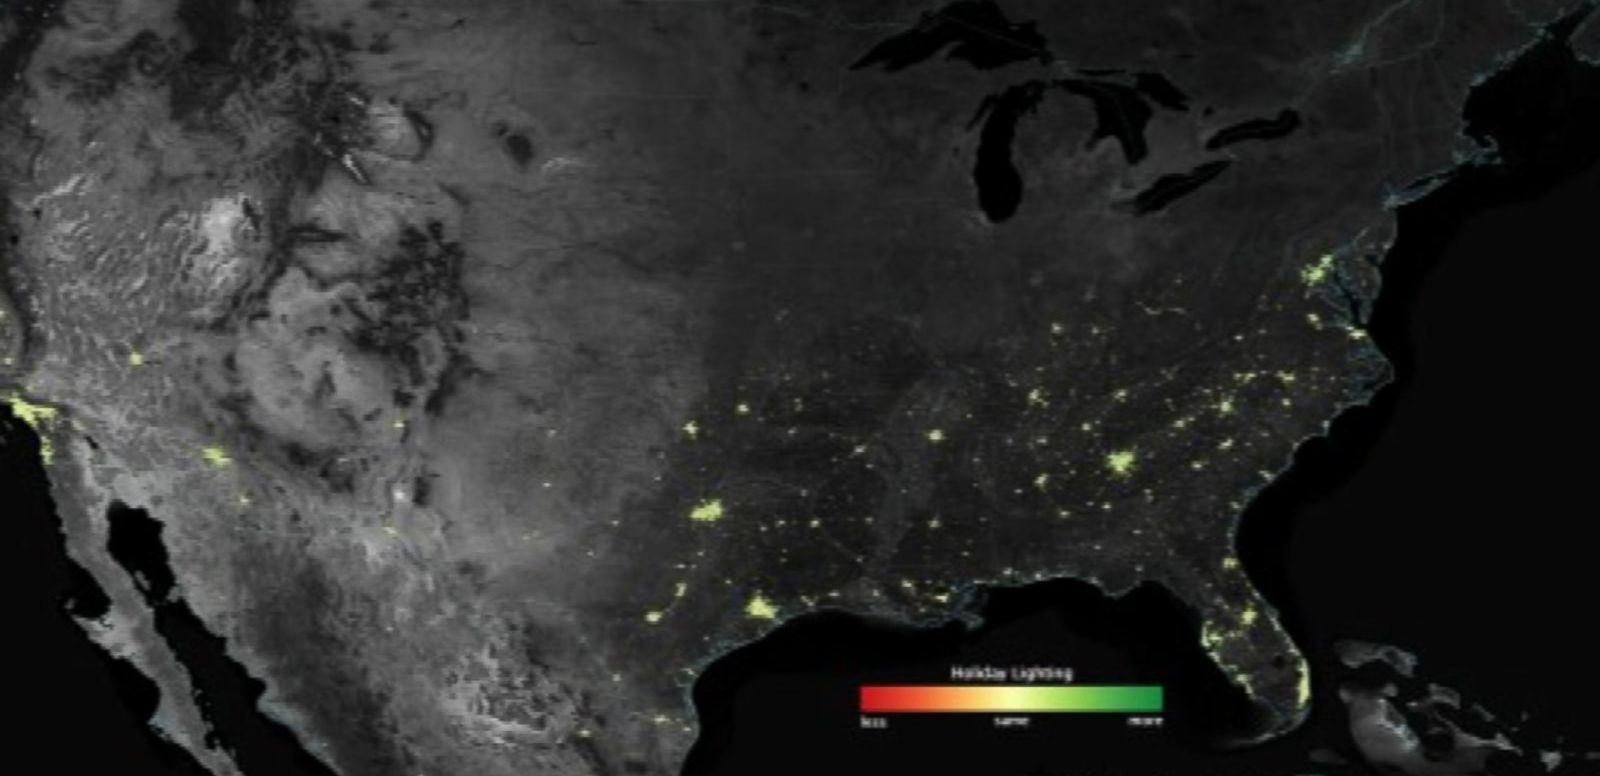 VIDEO: NASA releases satellite images of holiday decorations visible from space, lighting up large swaths of the US.